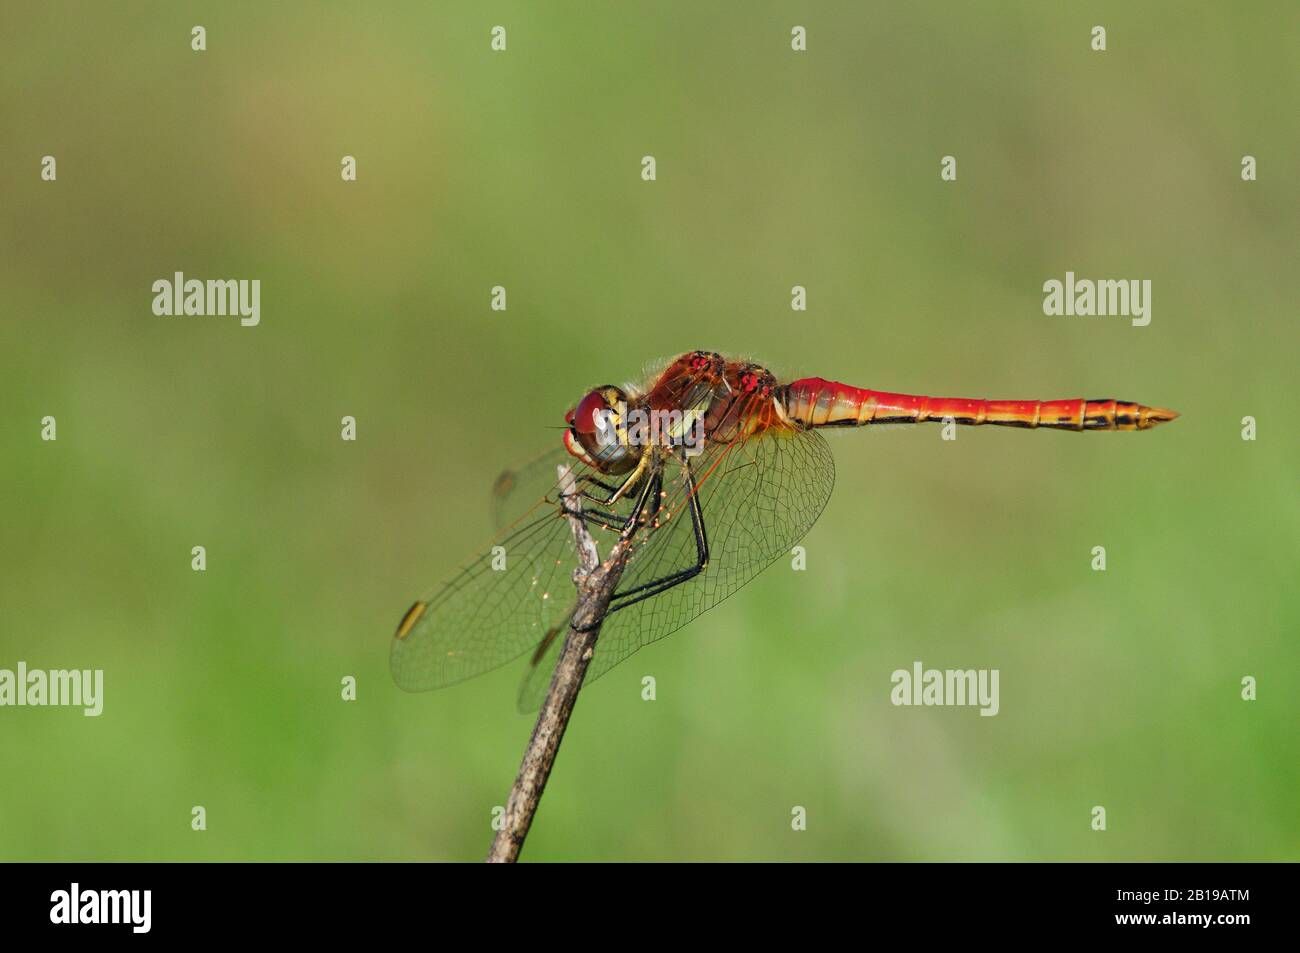 Broad Scarlet, Common Scarlet-darter, Scarlet Darter, Scarlet Dragonfly (Crocothemis erythraea, Croccothemis erythraea), male sits on a twig, Spain, Andalusia, Donana National Park Stock Photo